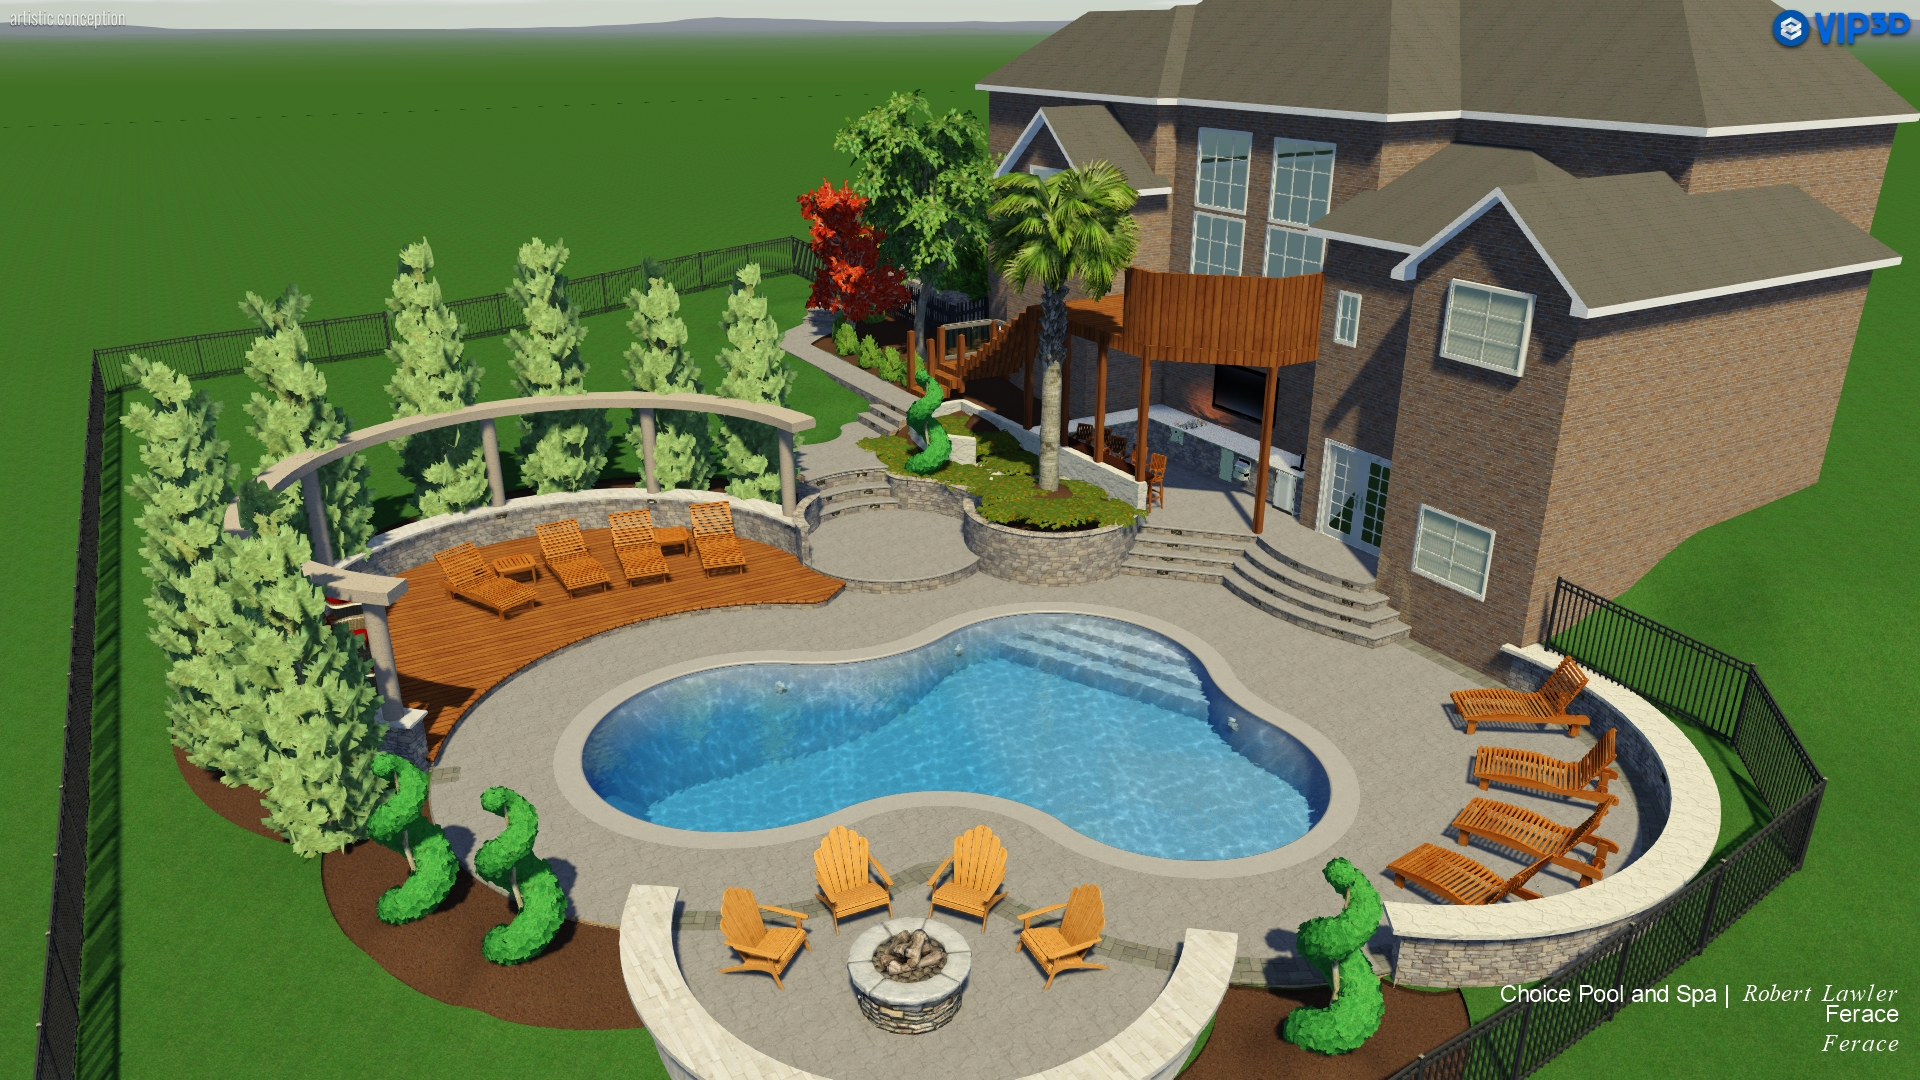 Raleigh Landscape Design: 3D Pool & Spa Services | Choice P&S